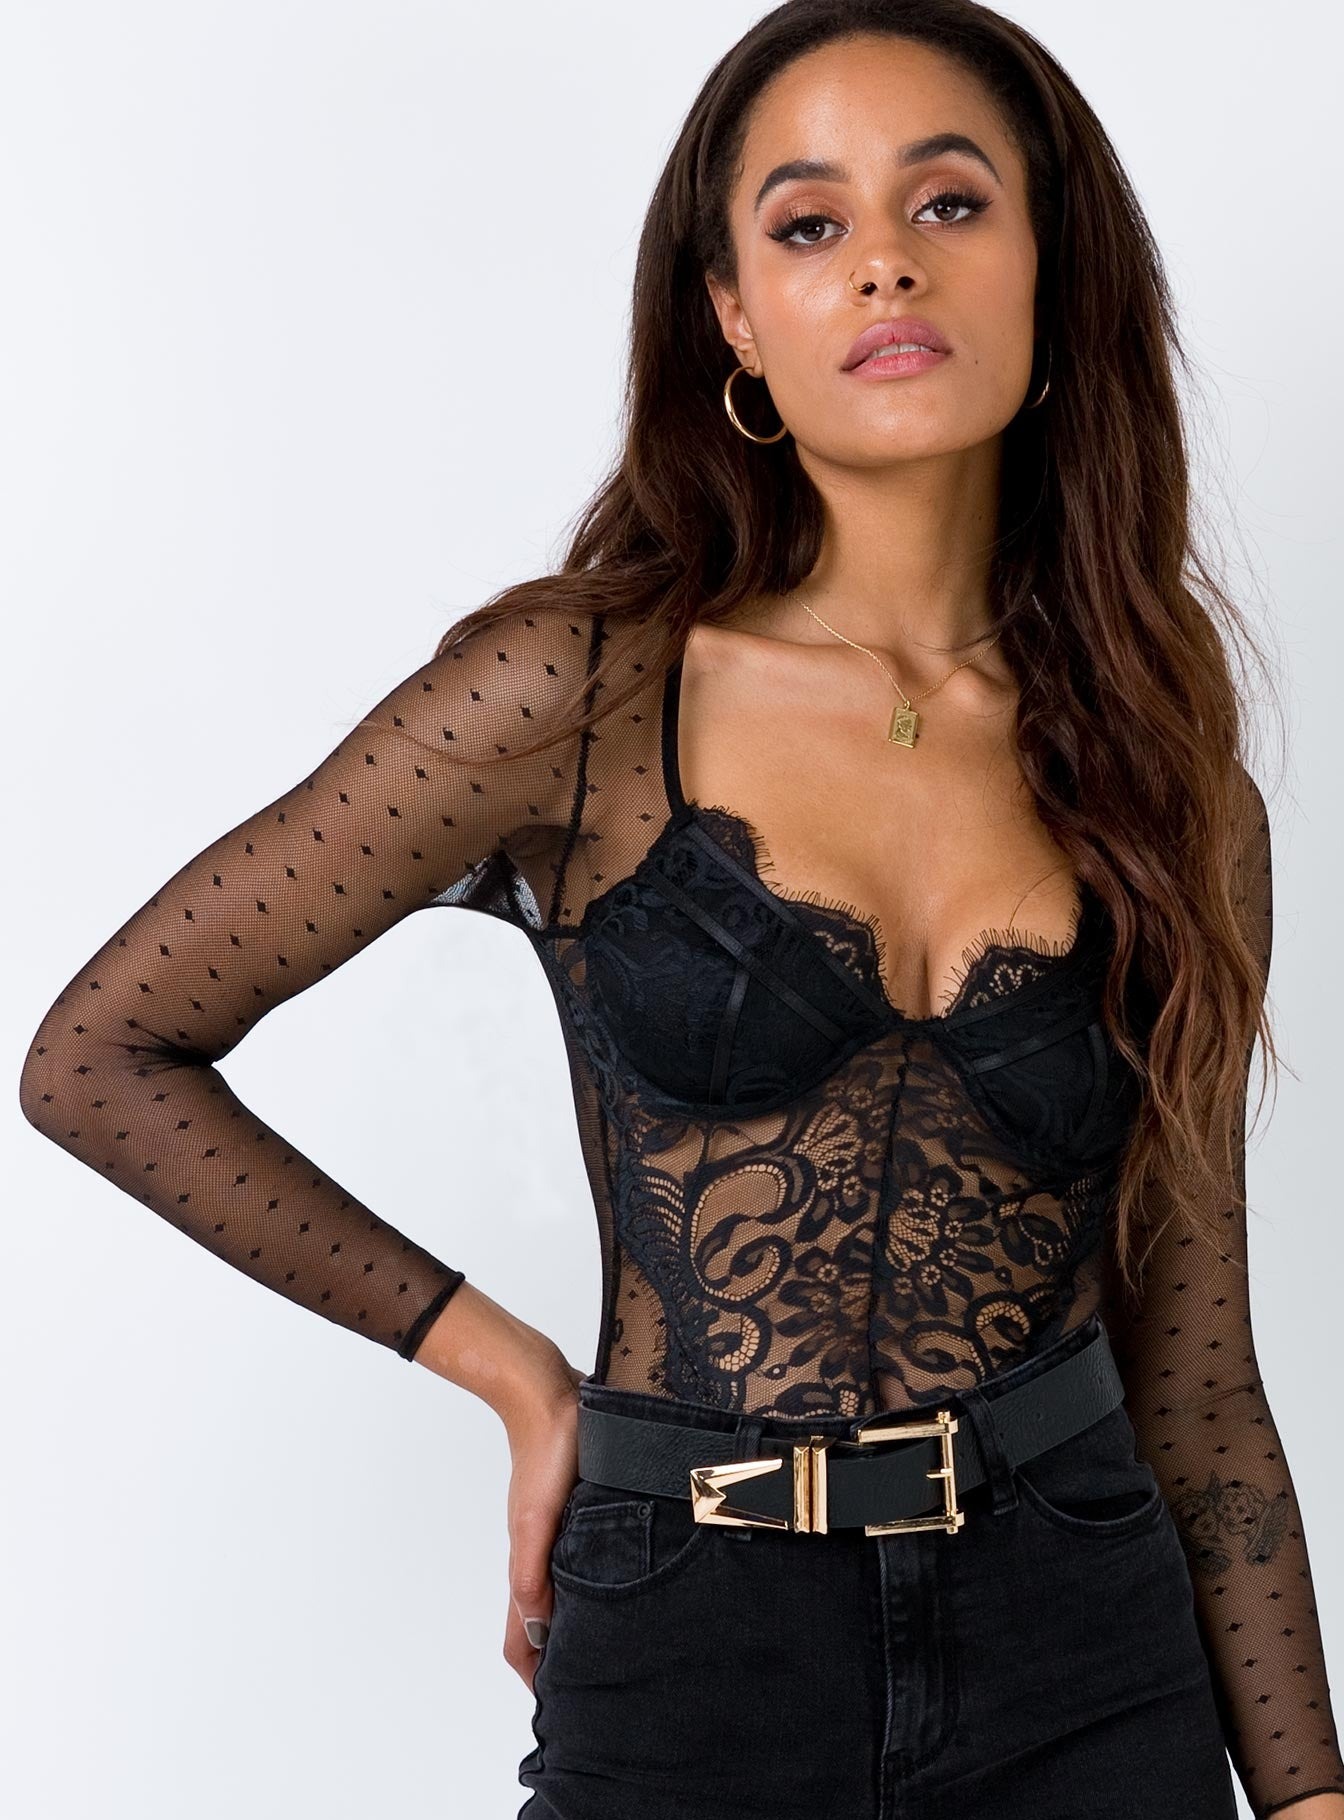 Cherry Bomb Bodysuit Black